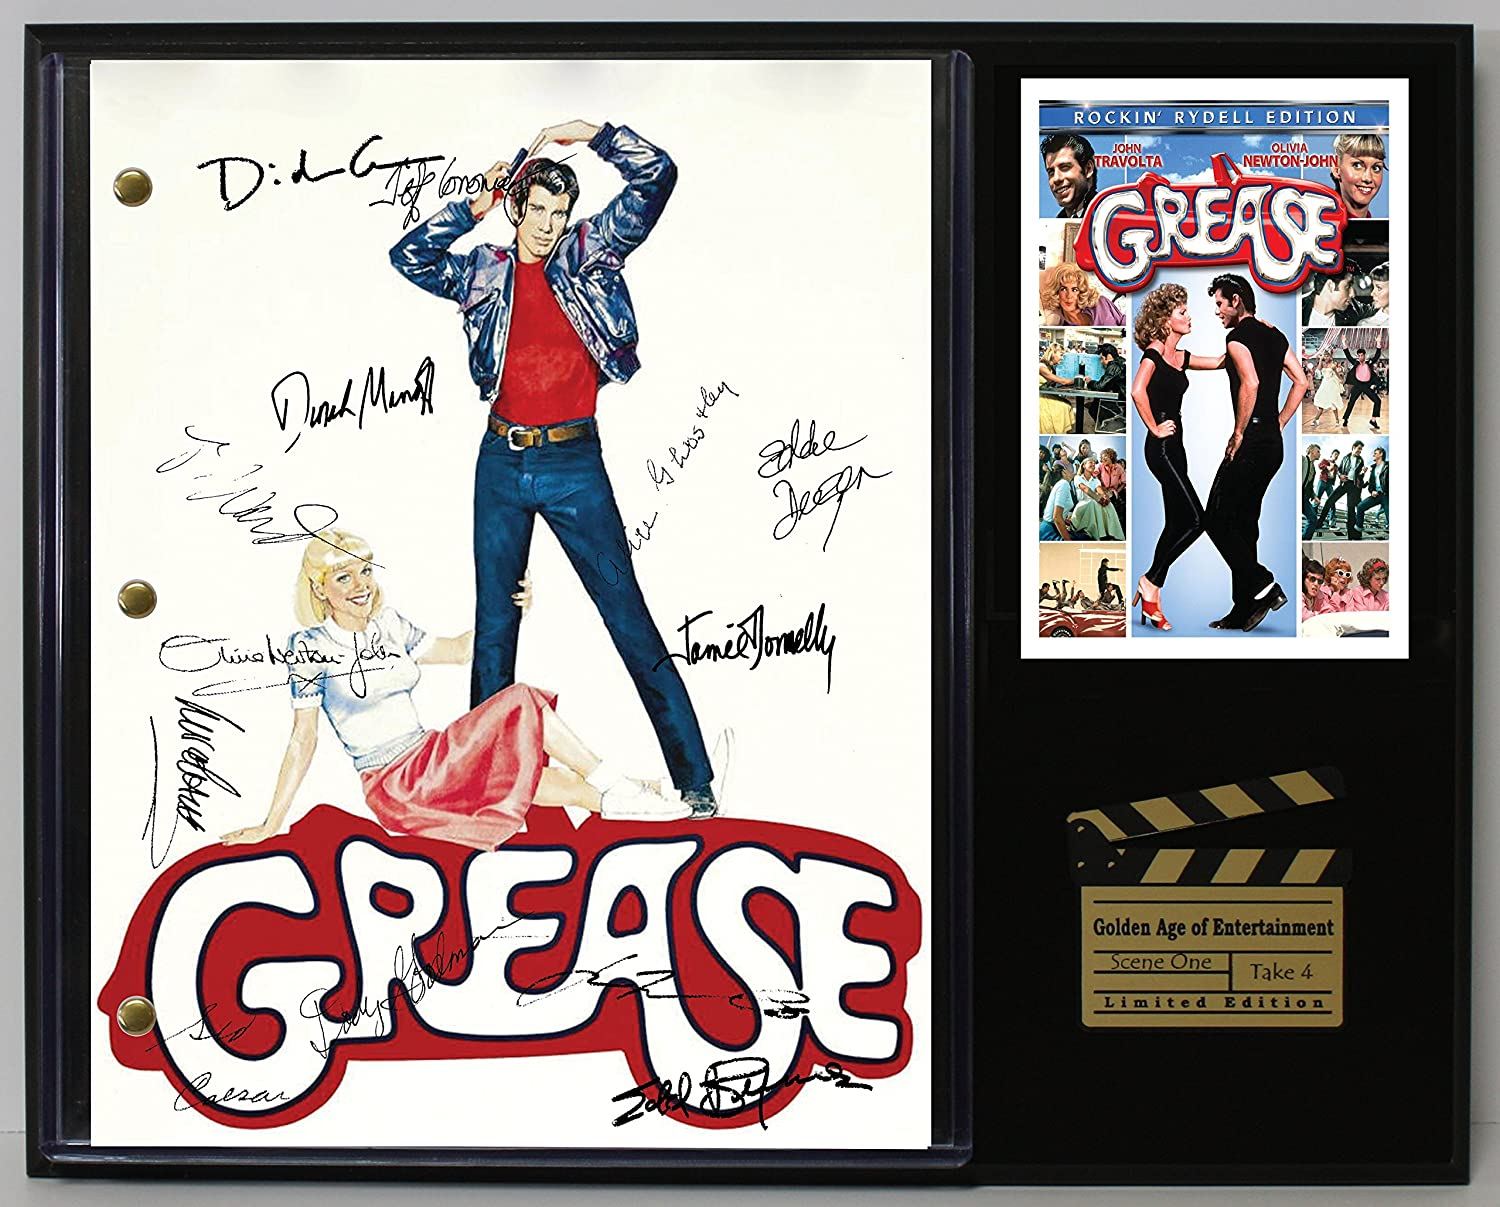 GREASE LTD EDITION REPRODUCTION SIGNED CINEMA SCRIPT DISPLAY'C3'